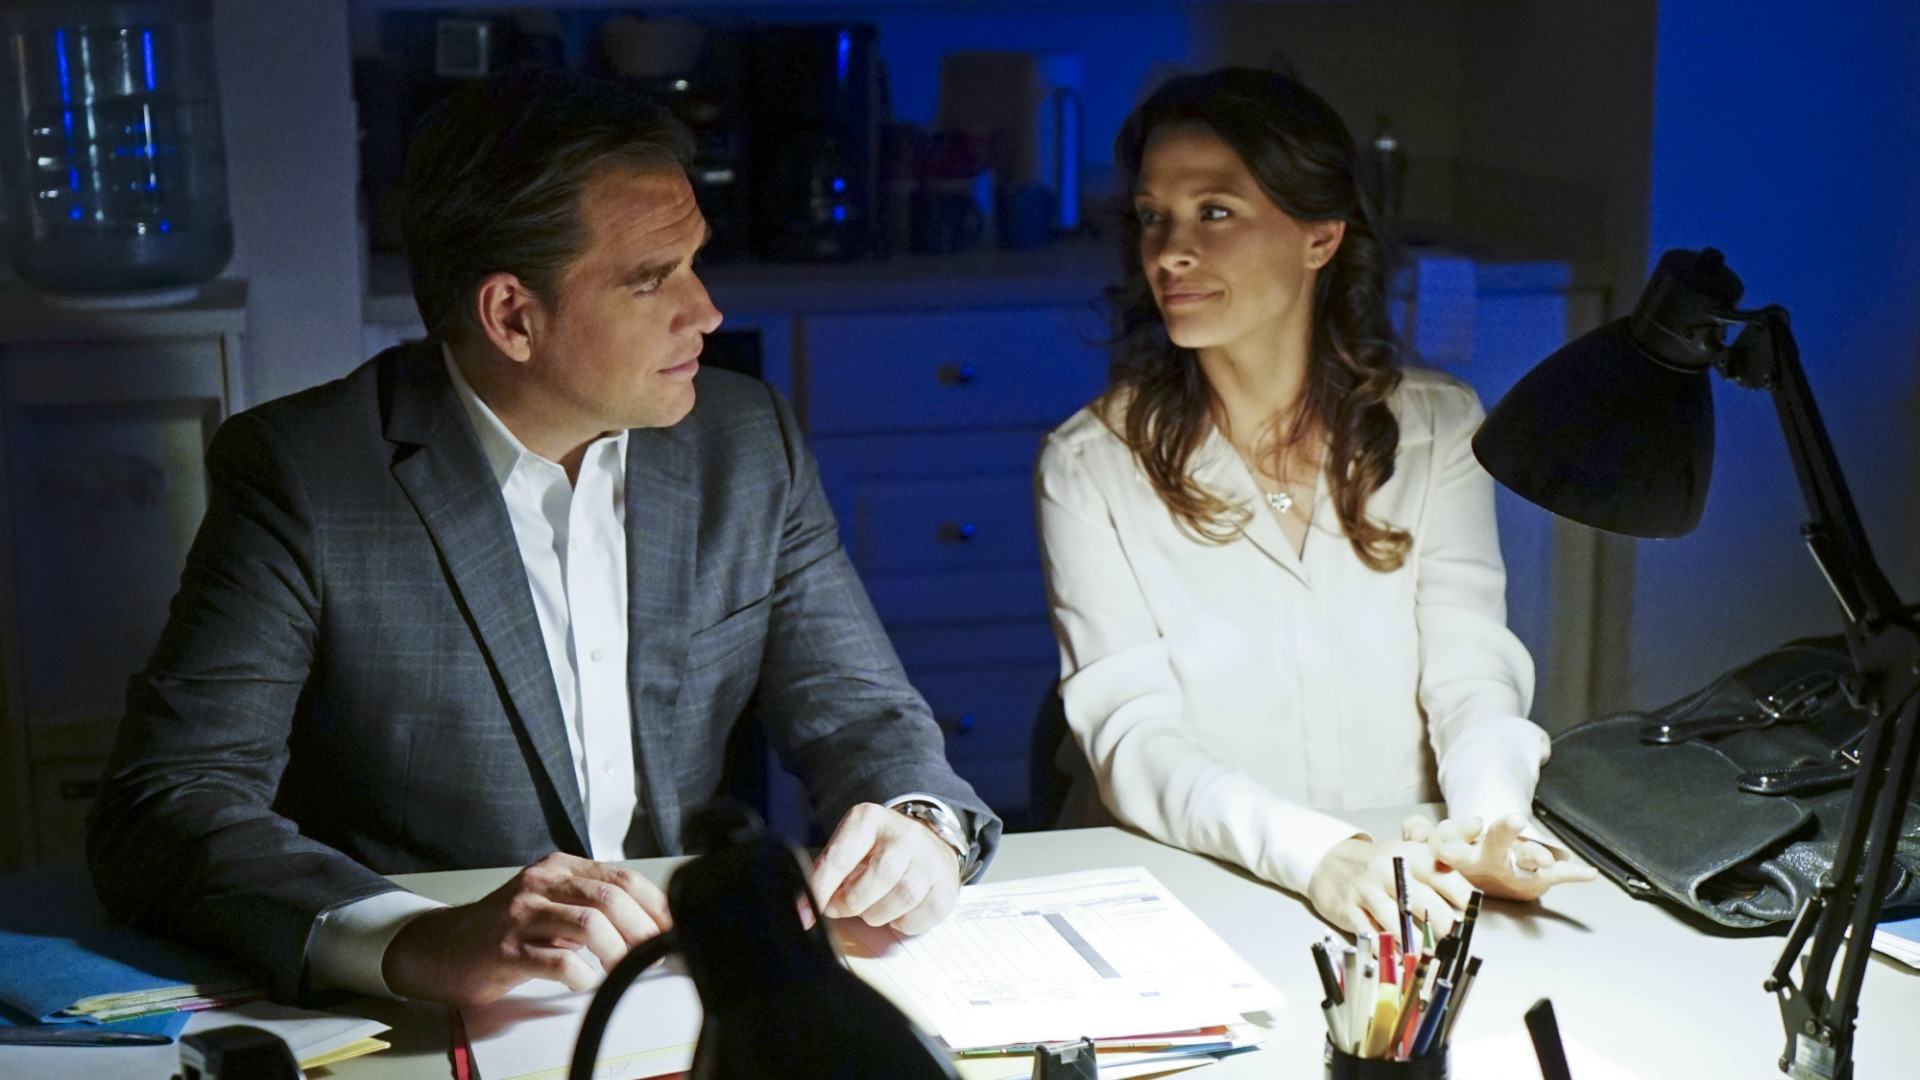 DiNozzo has an emotional conversation with Jeanne.